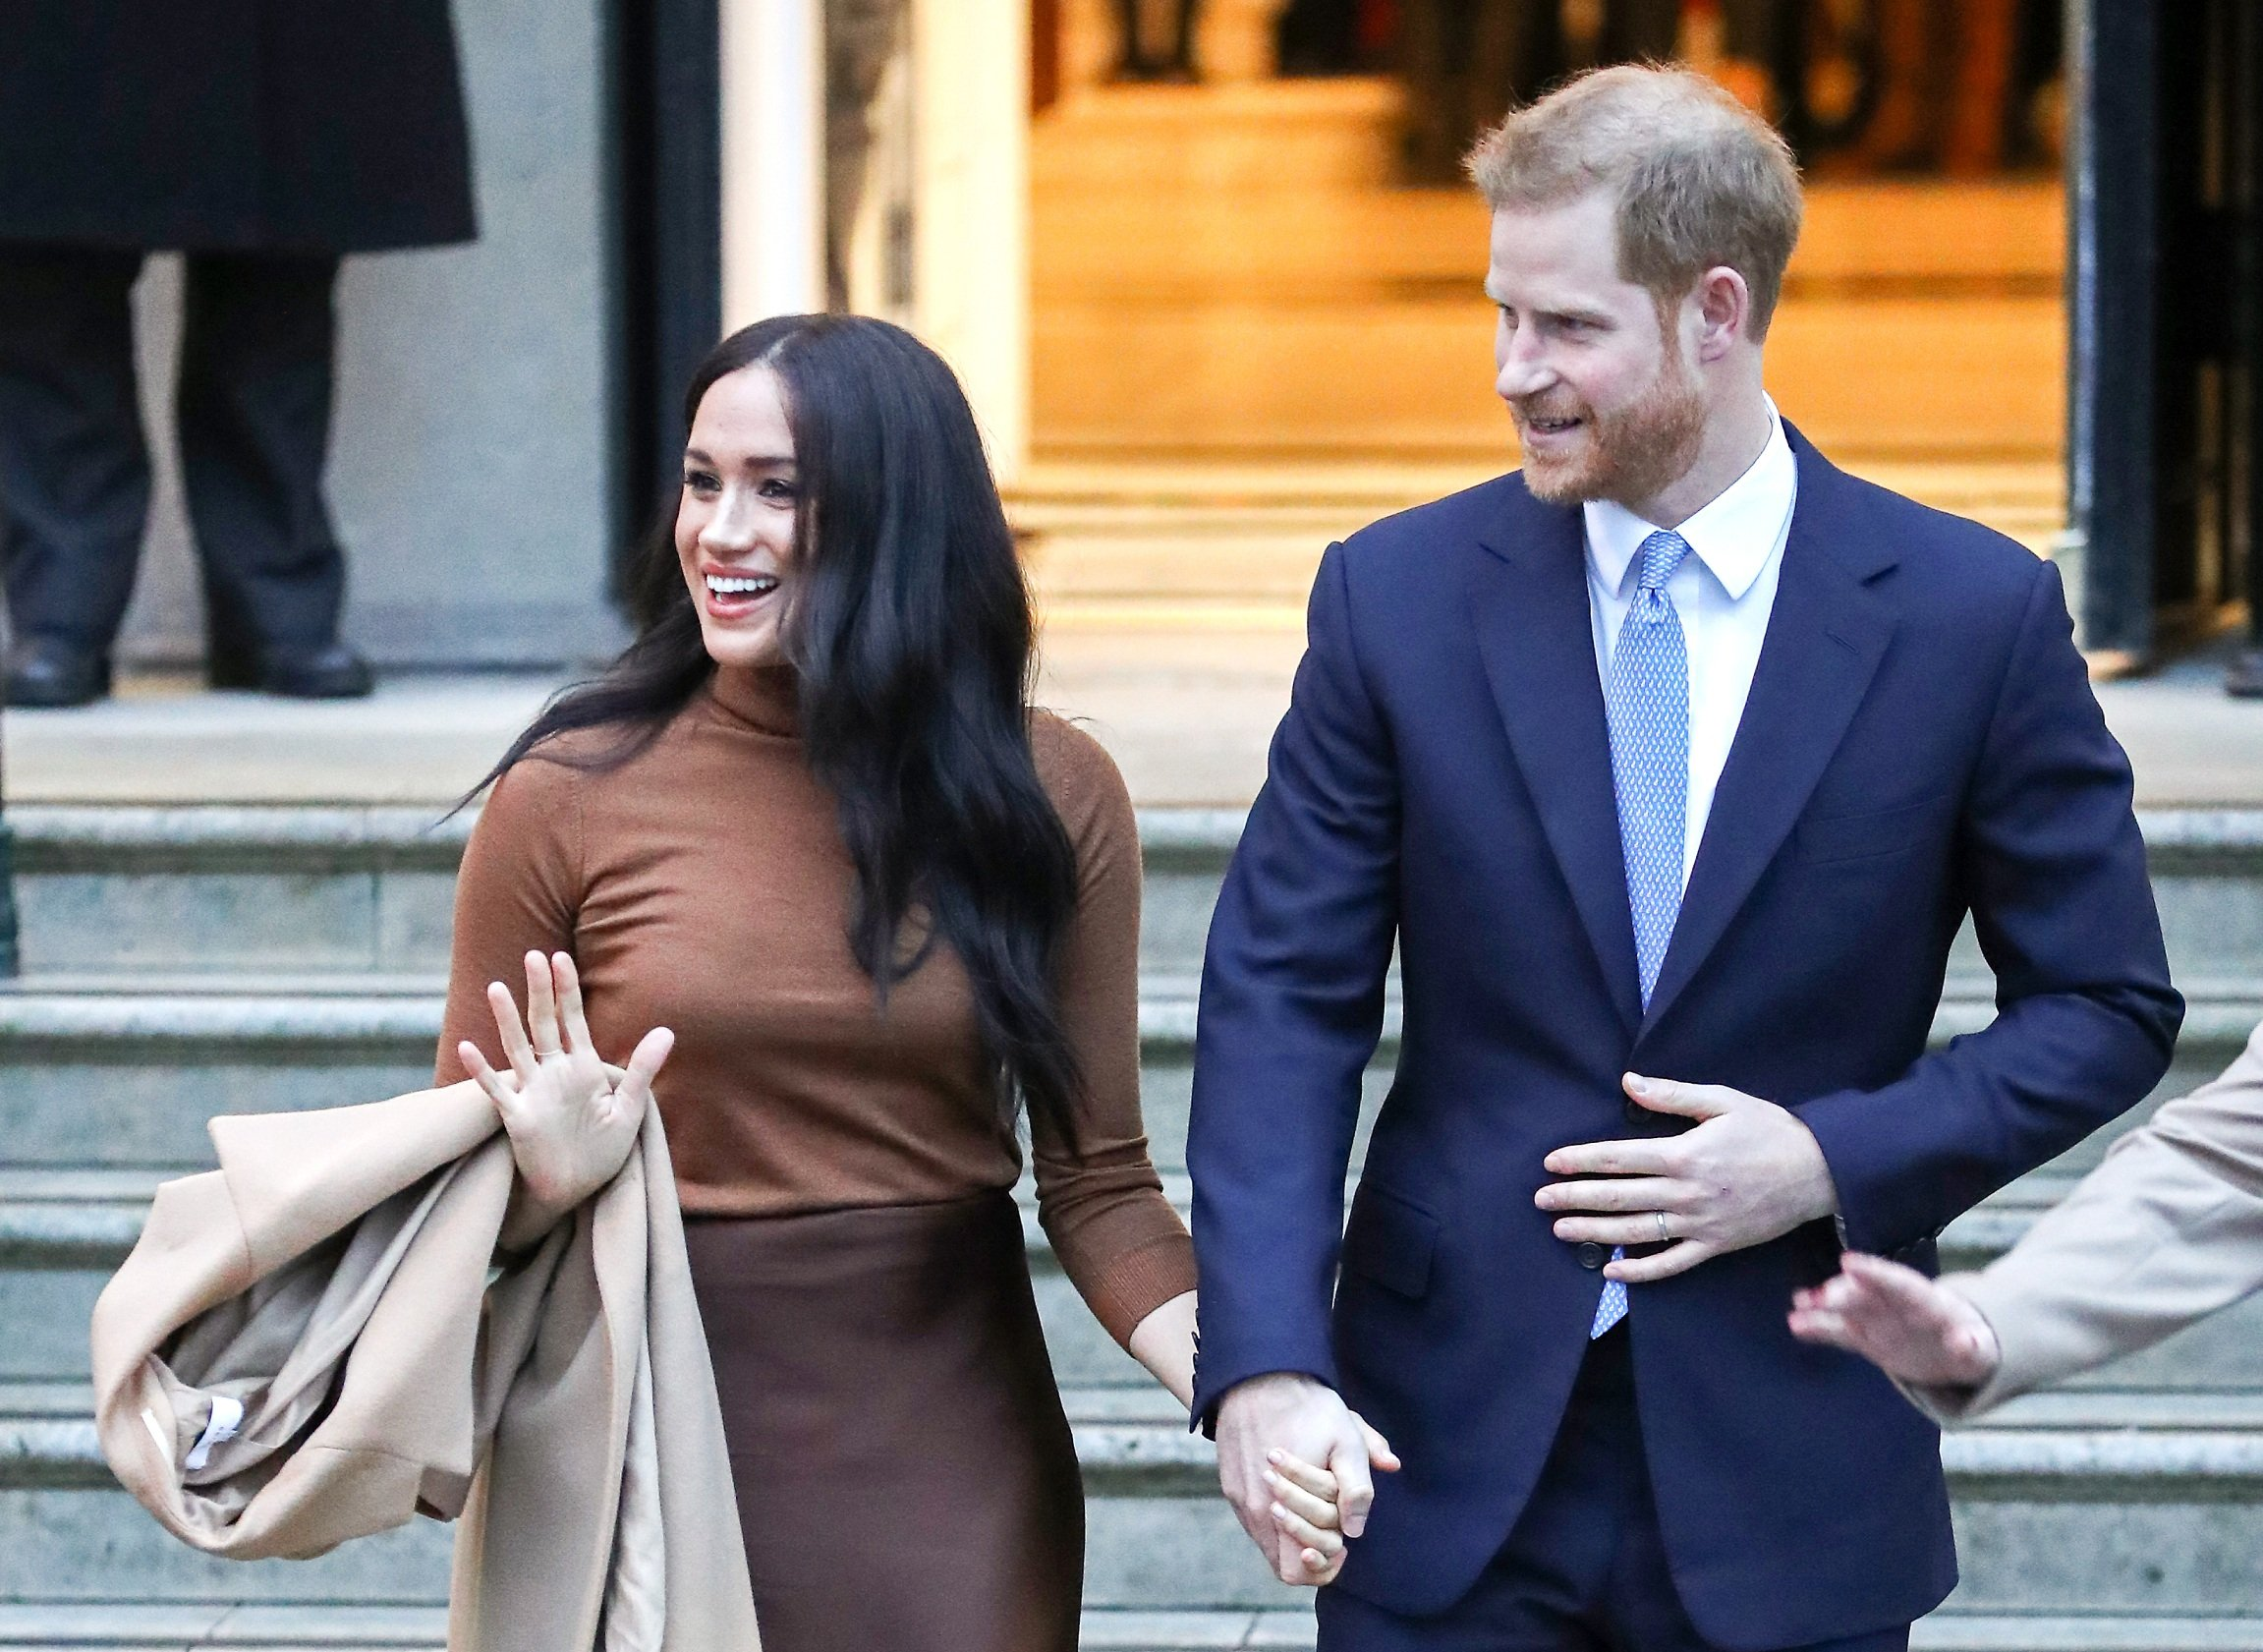 Meghan Markle and Prince Harry depart Canada House on January 07, 2020, in London, England. | Source: Getty Images.